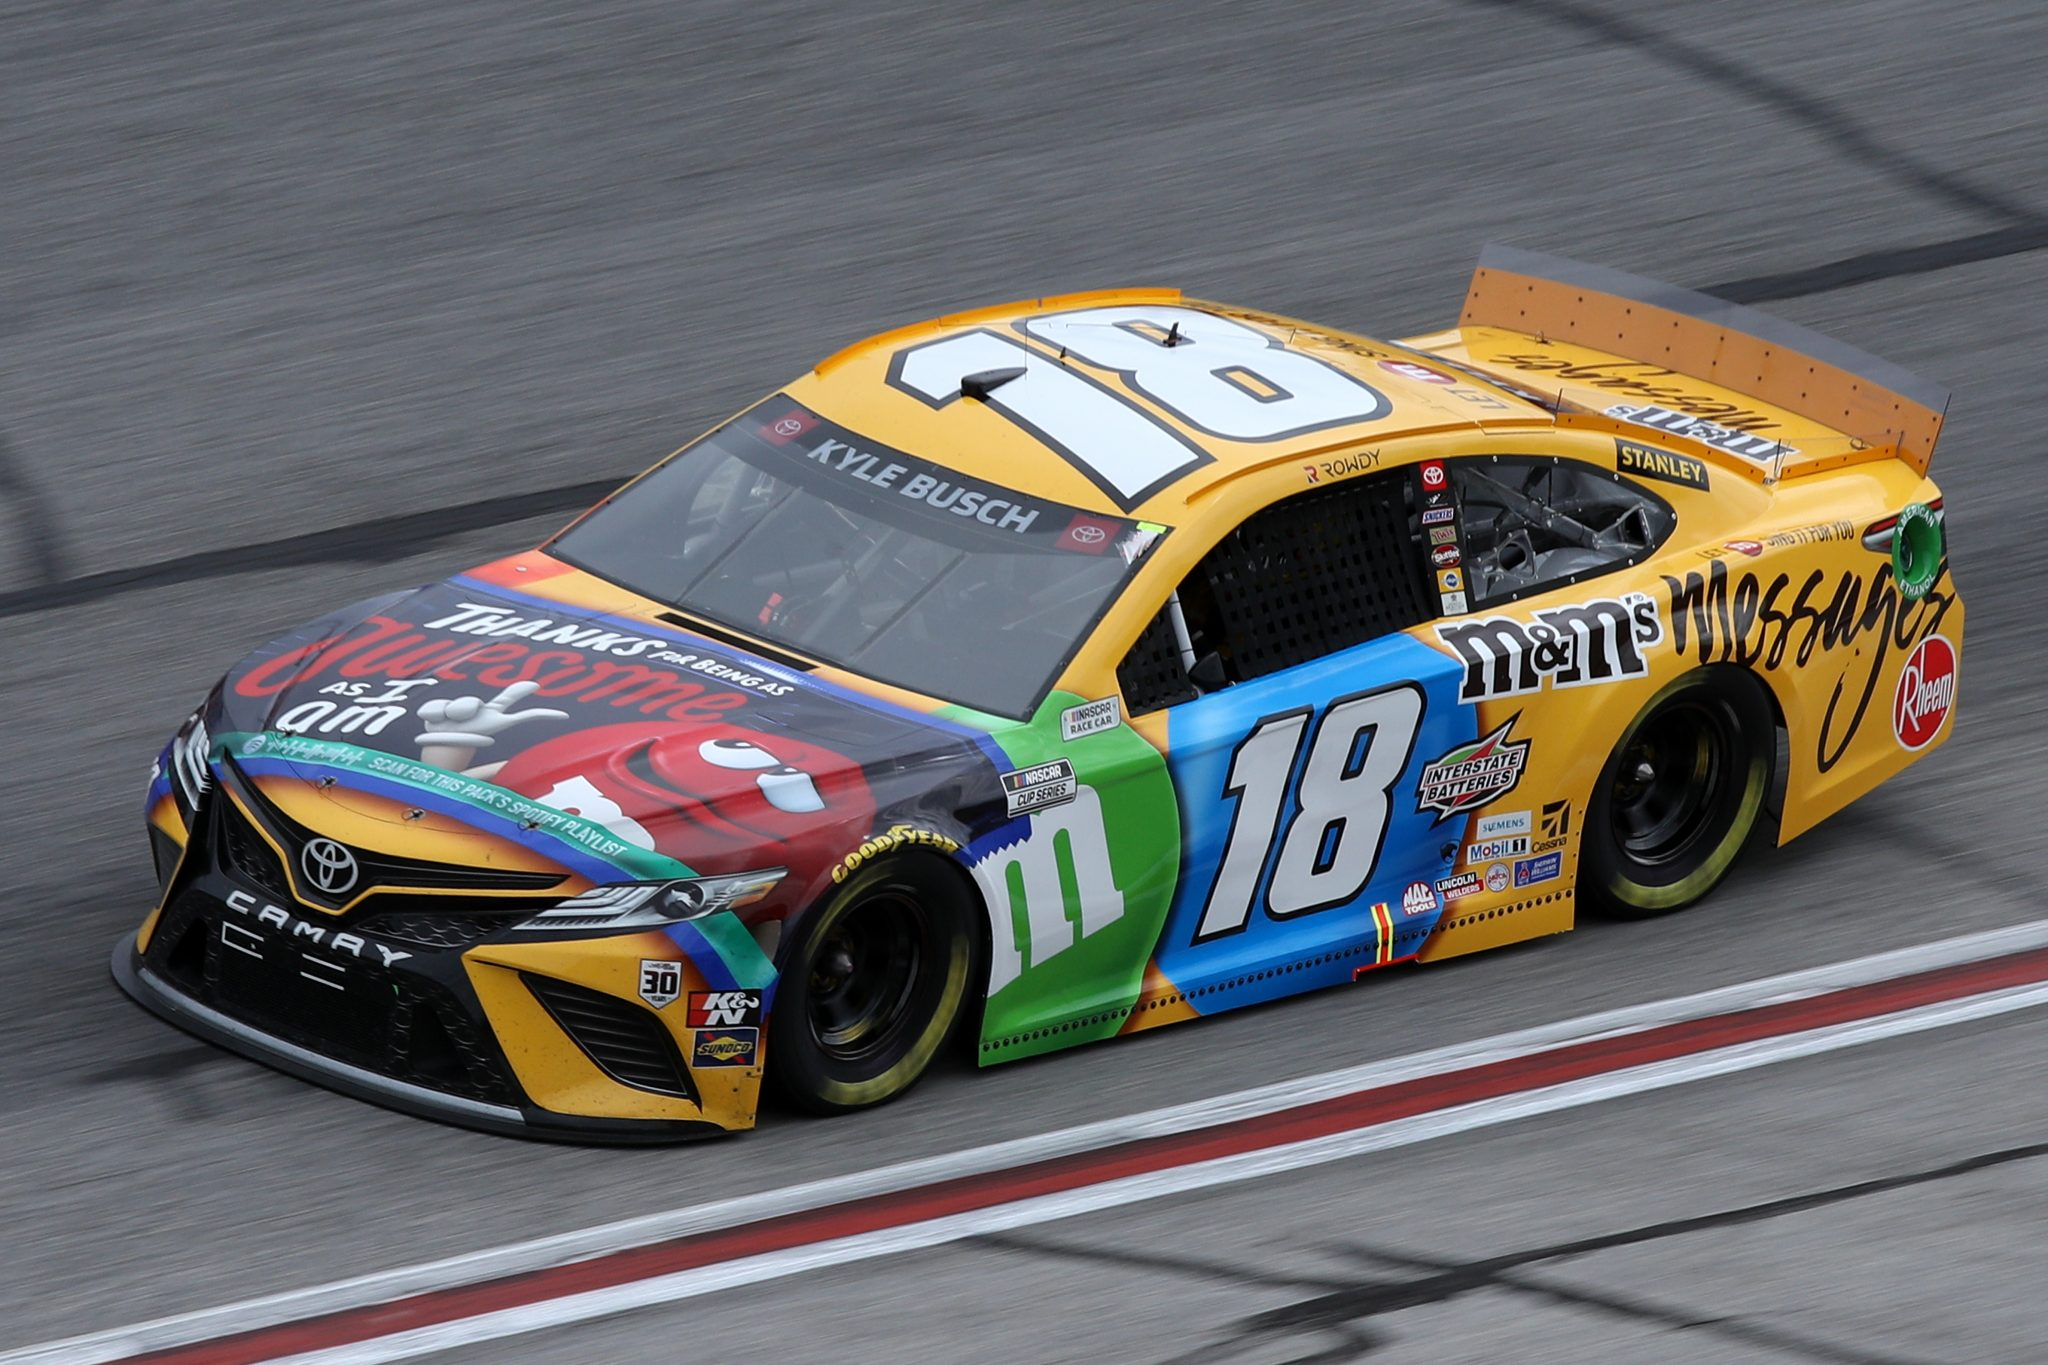 HAMPTON, GEORGIA - MARCH 21: Kyle Busch, driver of the #18 M&M's Messages Toyota, drives during the NASCAR Cup Series Folds of Honor QuikTrip 500 at Atlanta Motor Speedway on March 21, 2021 in Hampton, Georgia. (Photo by Sean Gardner/Getty Images) | Getty Images